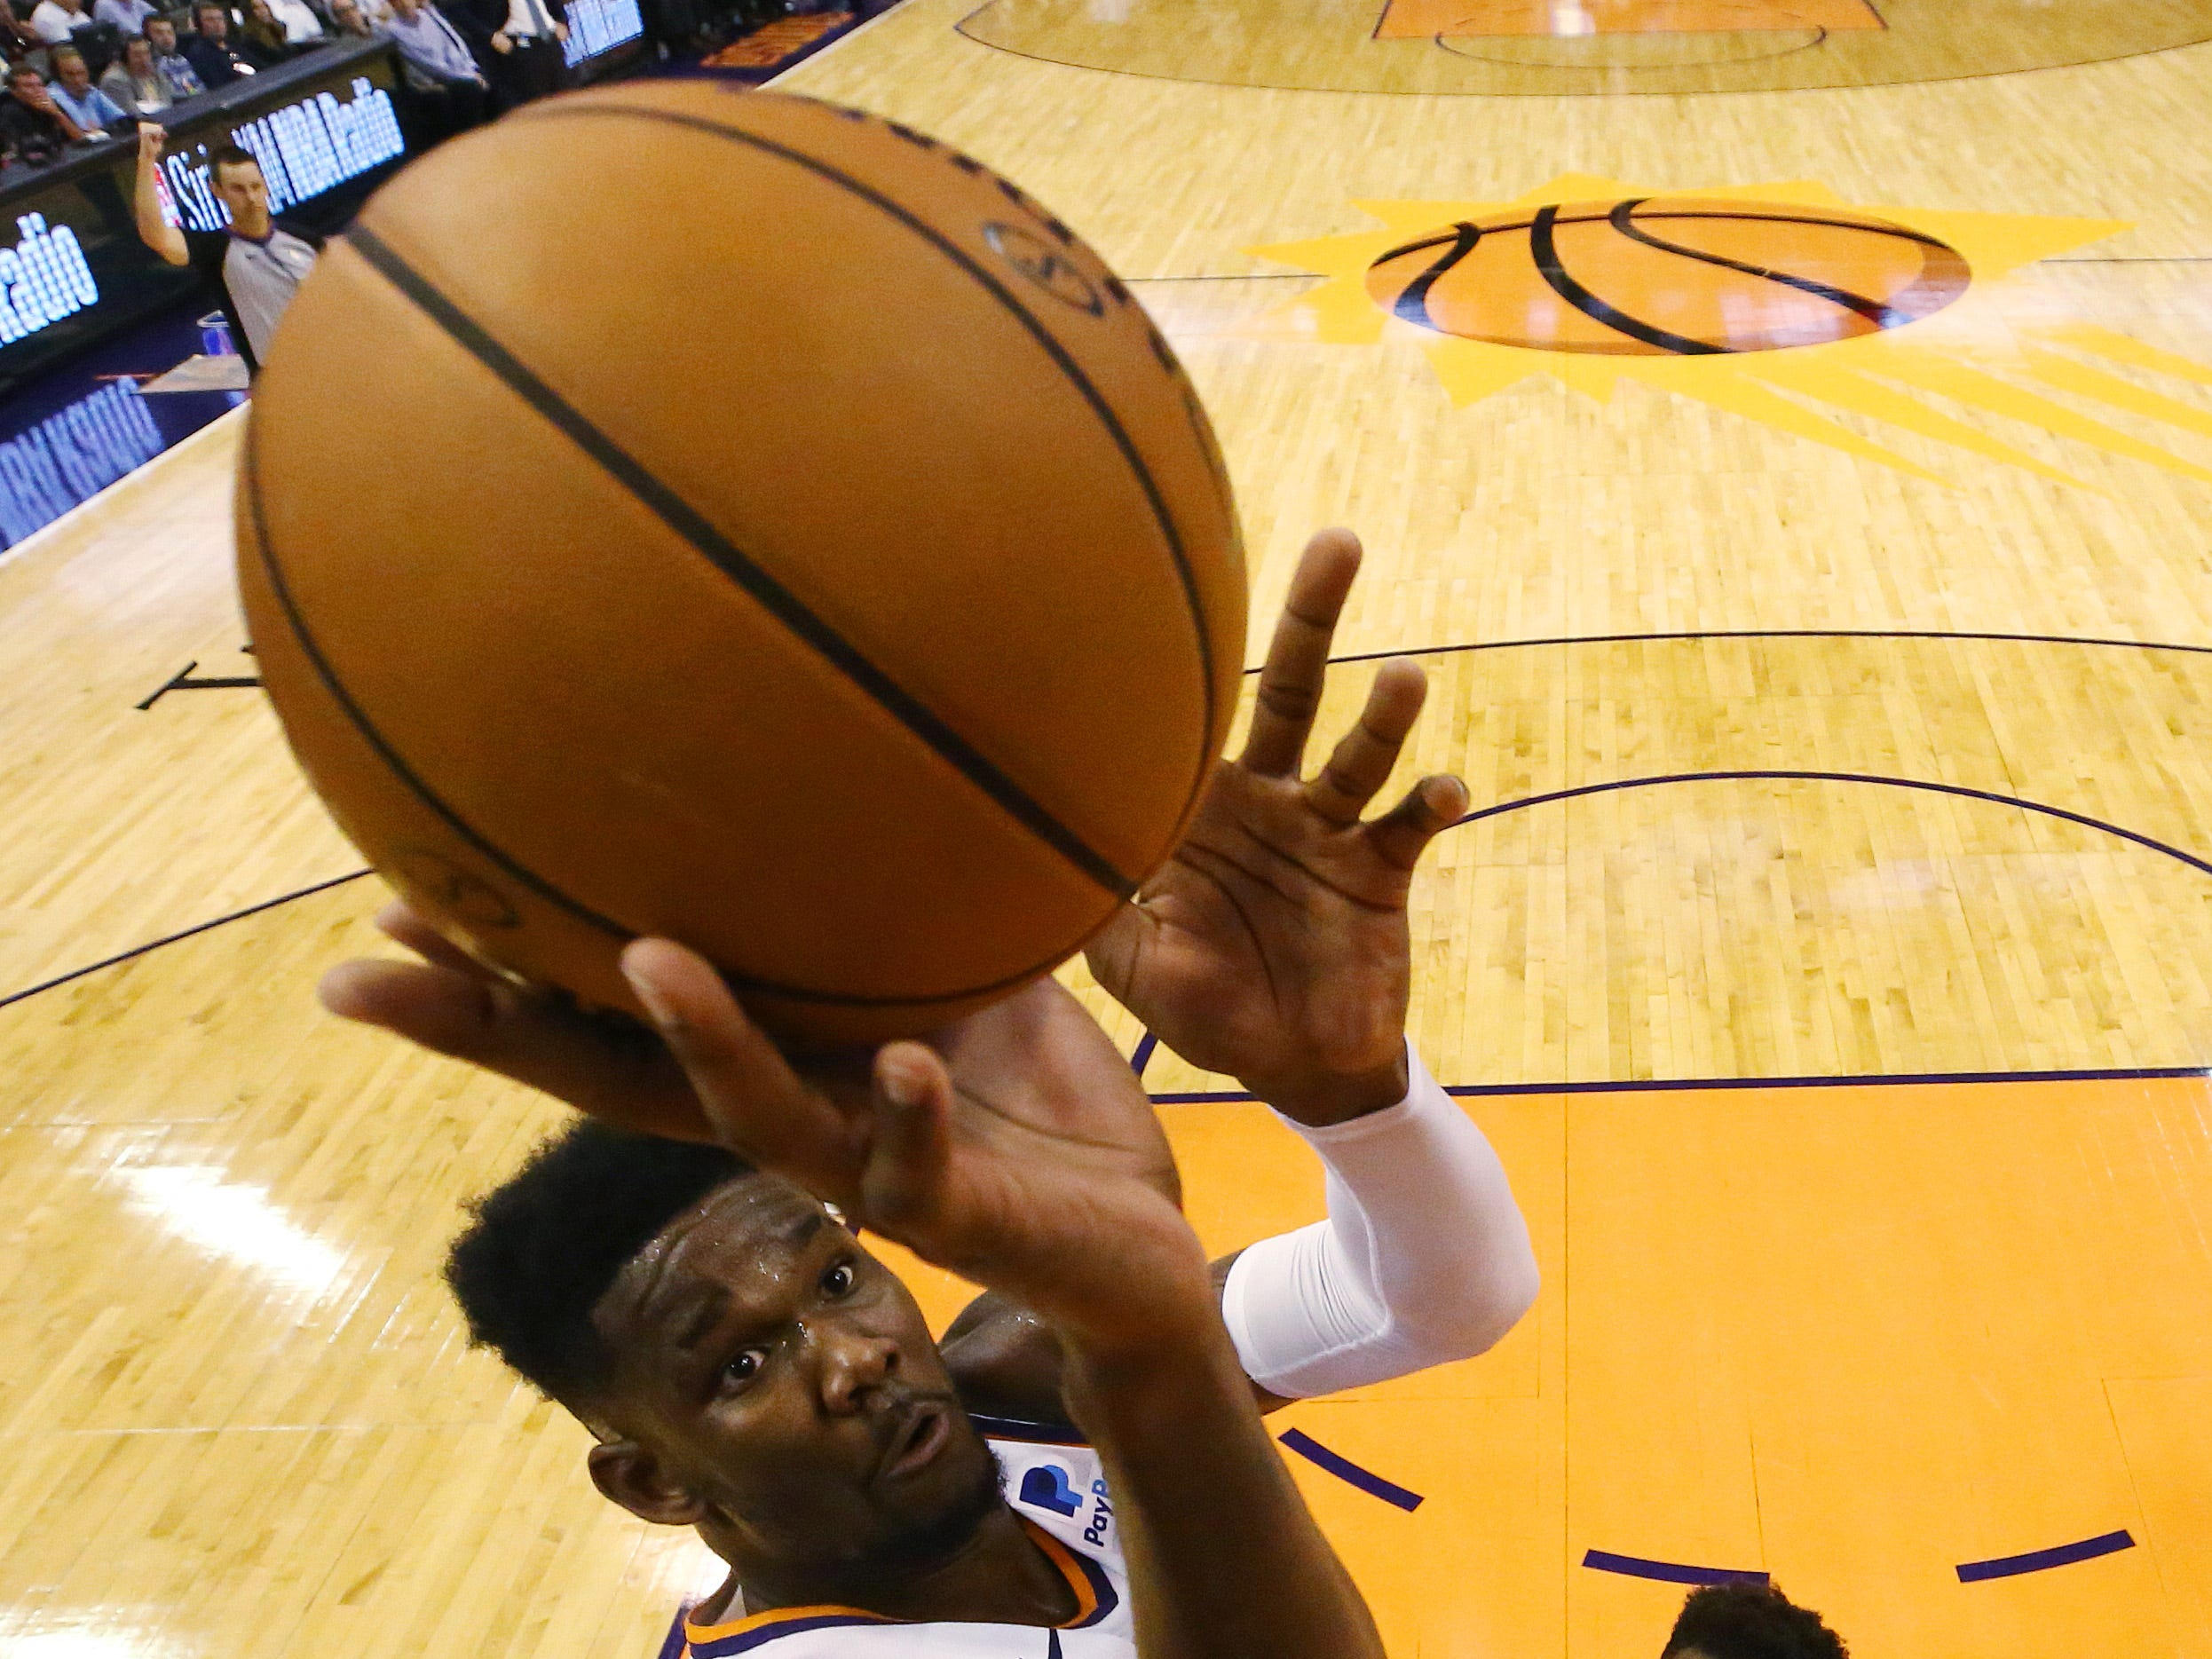 Phoenix Suns rookie center Deandre Ayton scores and is fouled on the play against the Dallas Mavericks during the season opener at Talking Stick Resort Arena on Oct. 17, 2018, in Phoenix, Ariz.